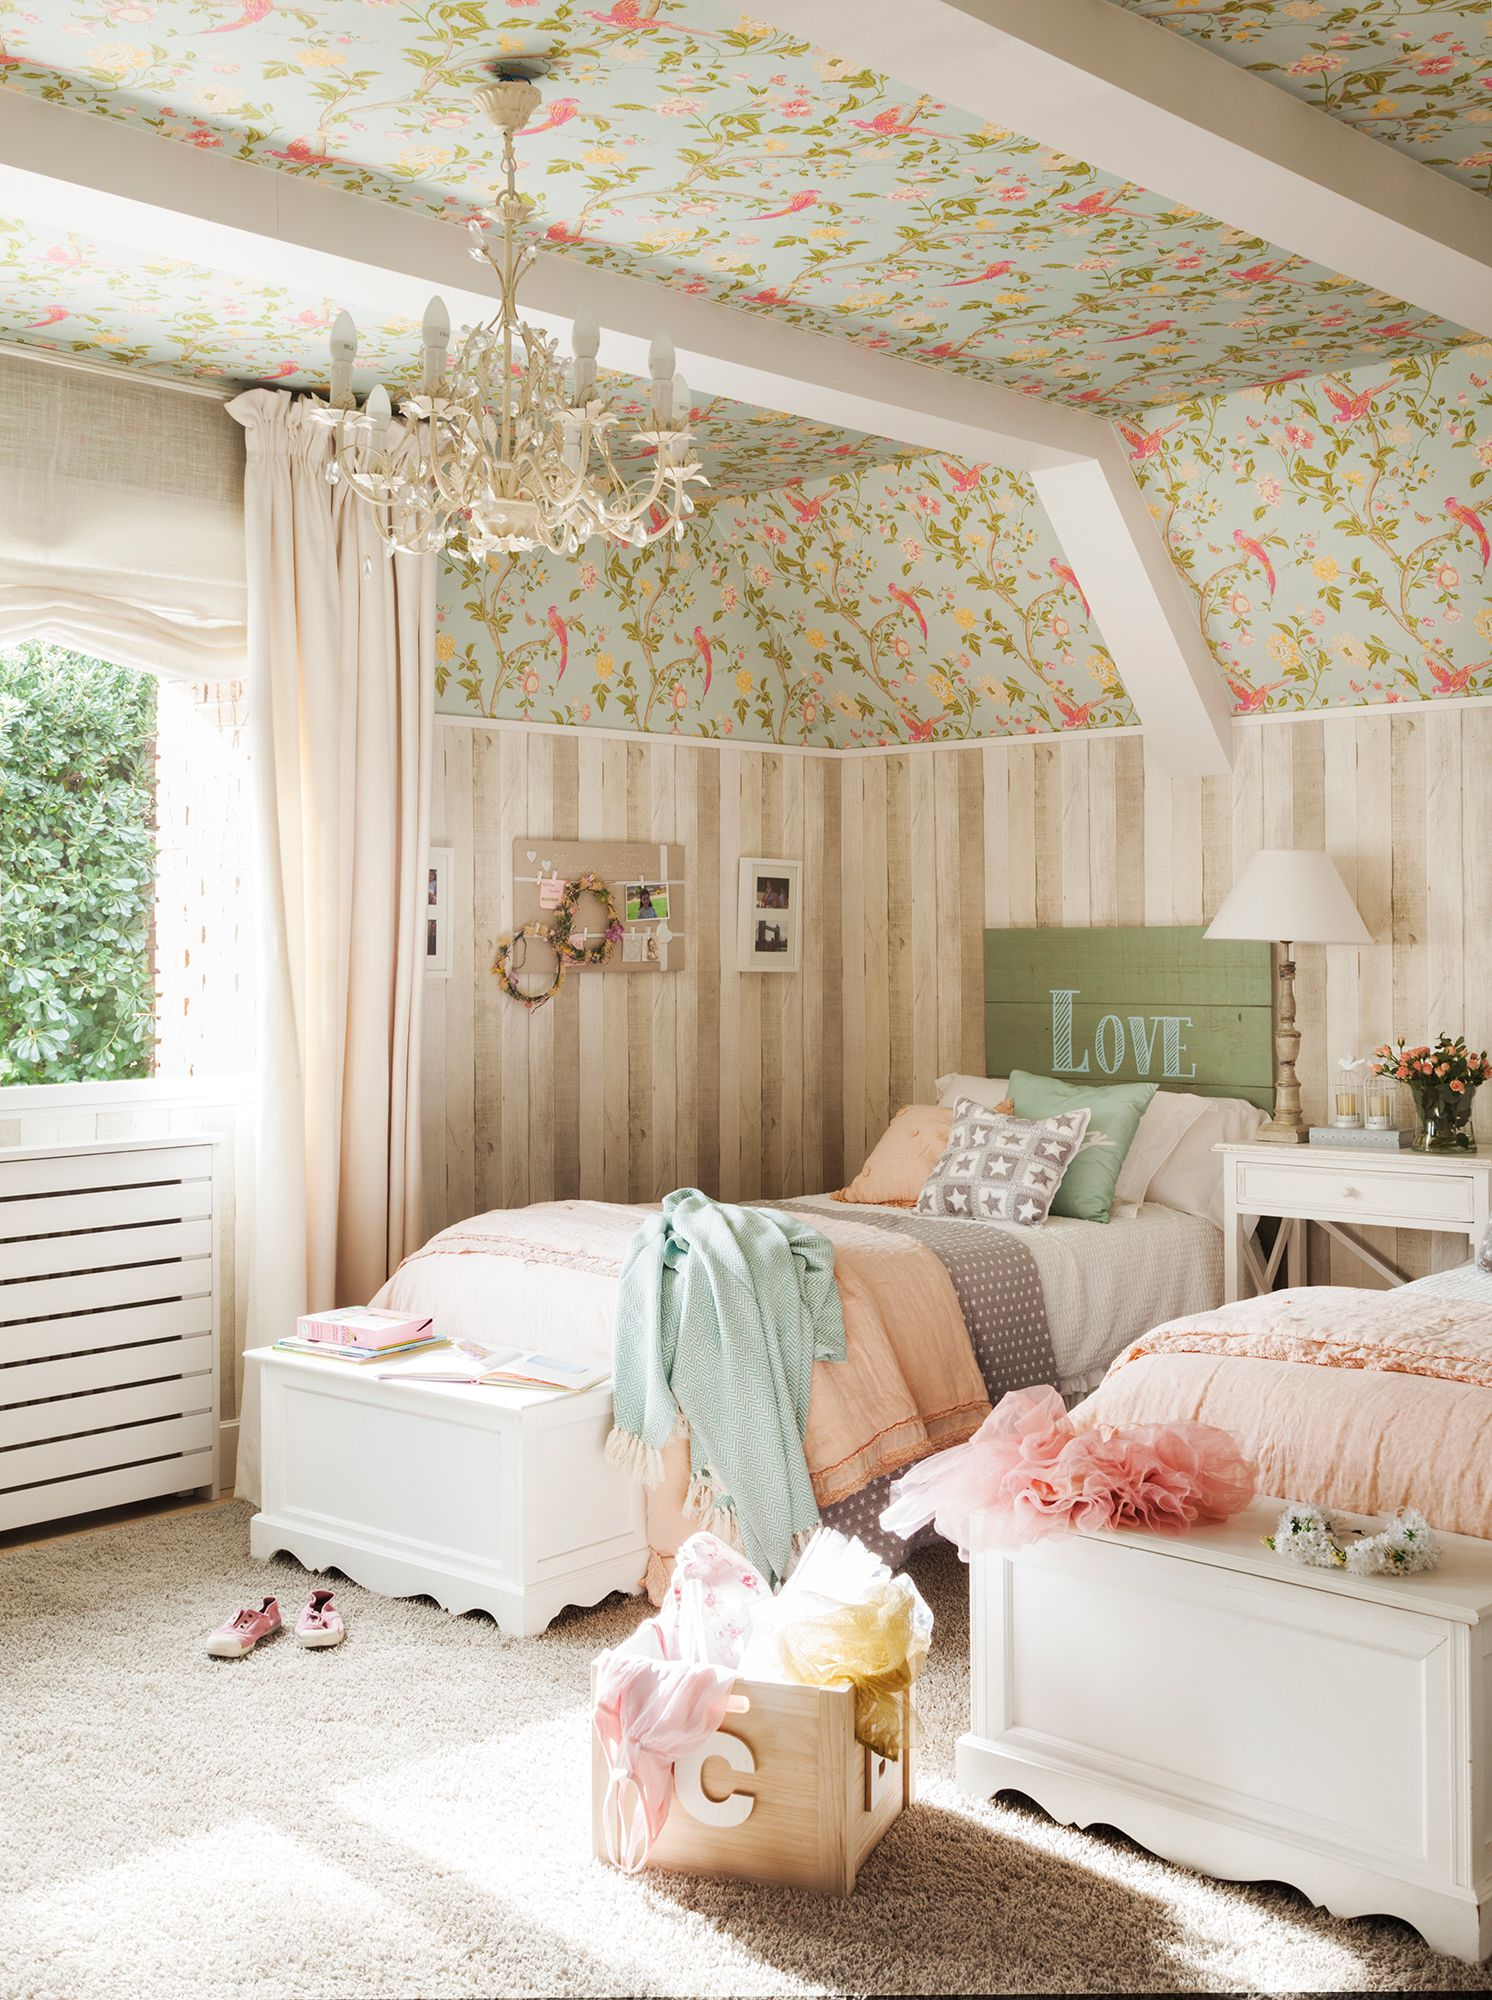 Dormitorios Infantiles Decoracion 33 Paredes Protagonistas House Styles Bedroom Room Y